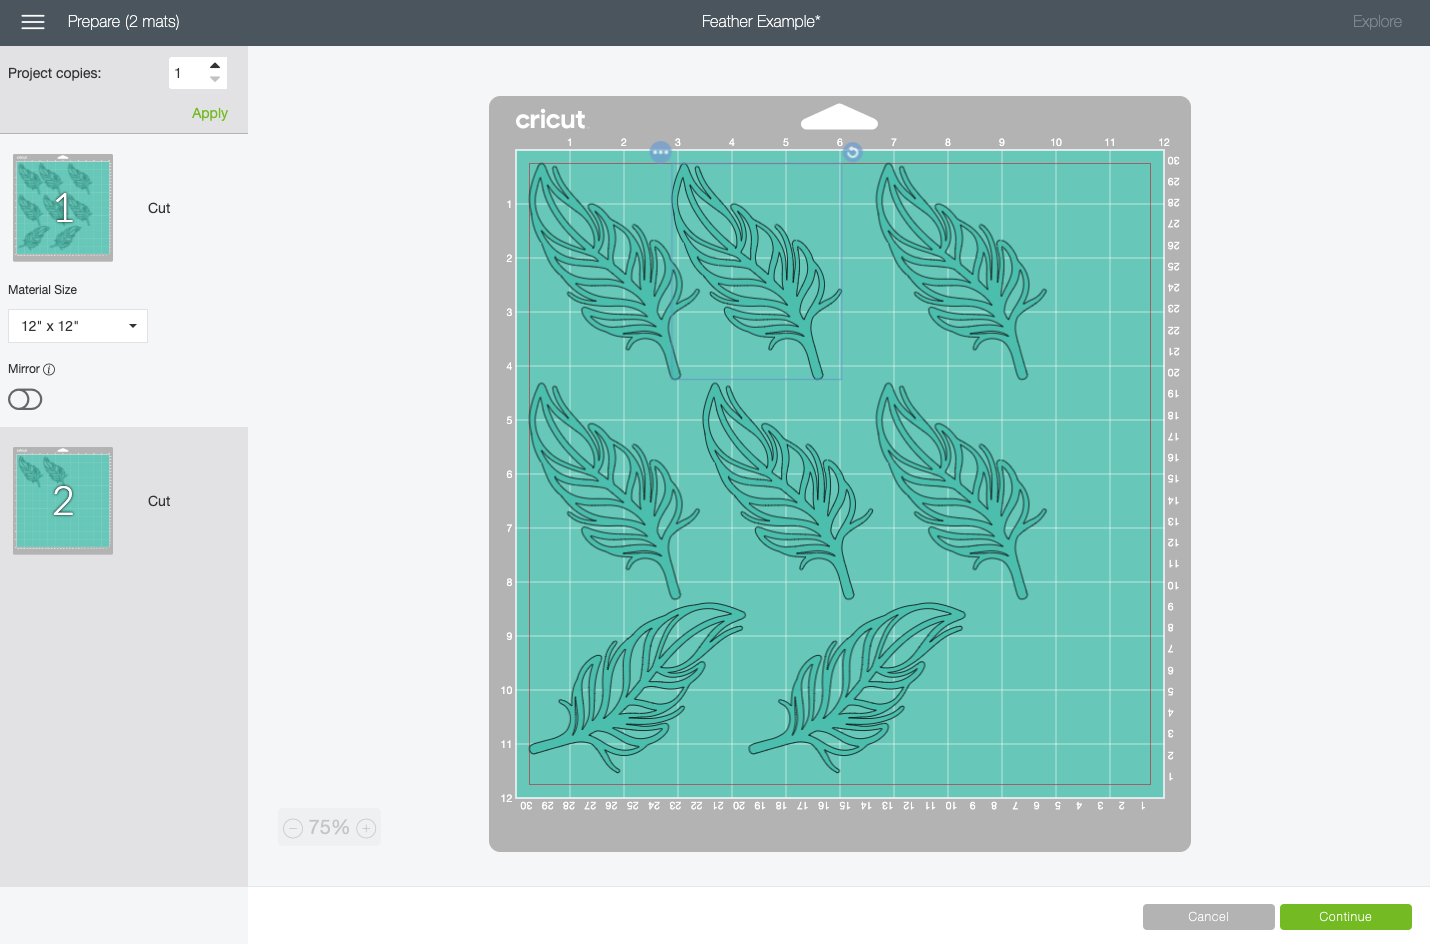 Cricut Design Space: showing how to select and move feather image